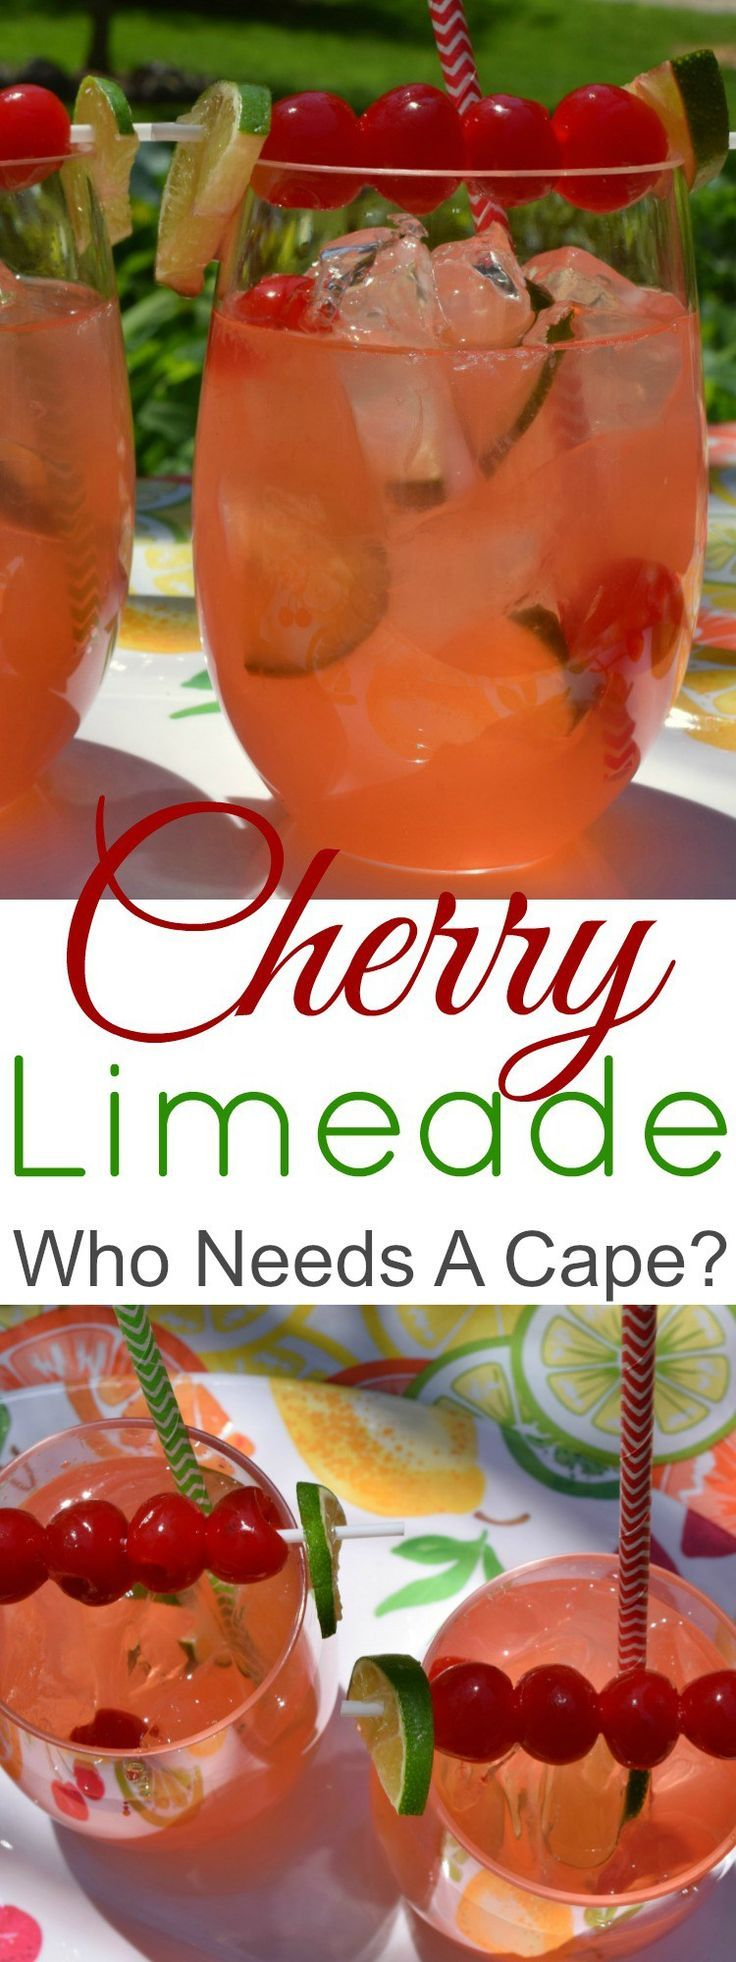 Make a big pitcher of our family favorite Cherry Limeade! Perfect for entertaining and summertime sipping, you'll love the sweet & tart combo.   Who Needs A Cape?